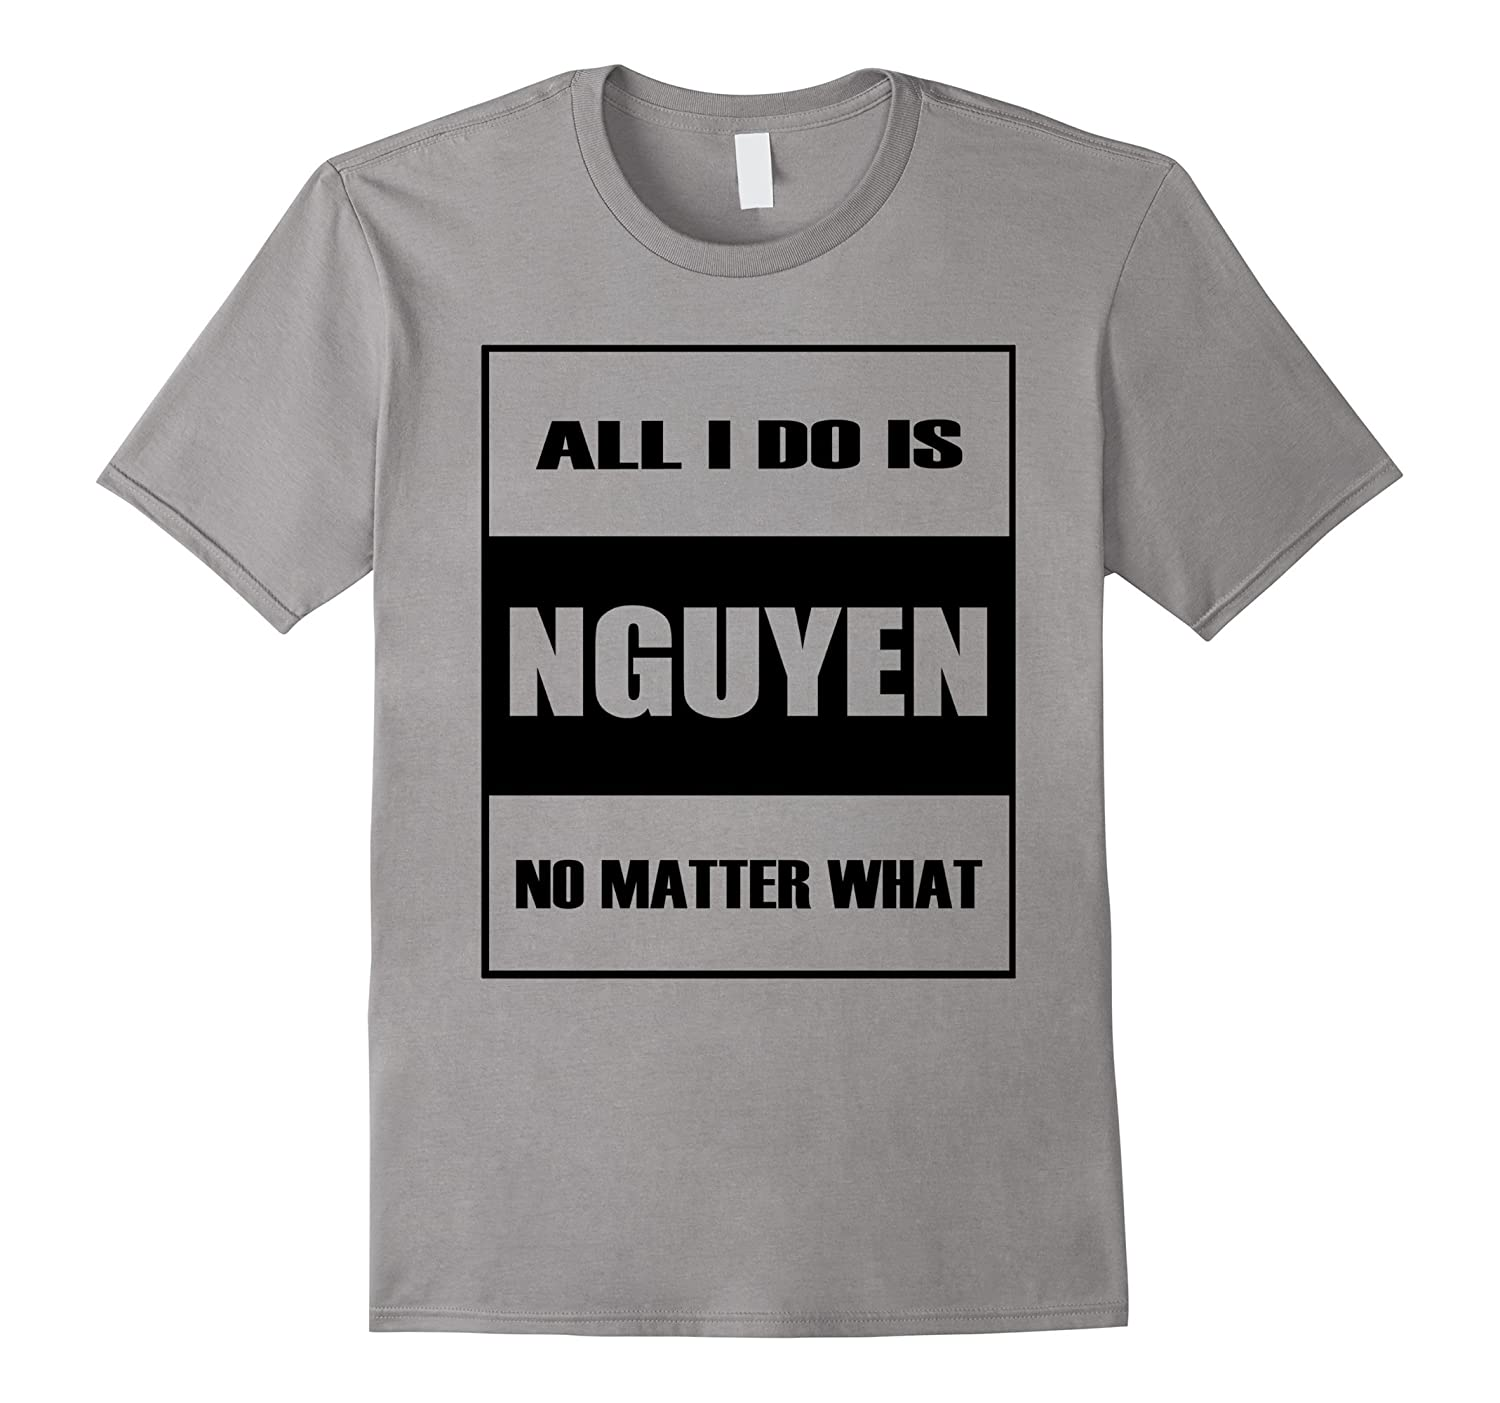 All I Do Is Nguyen No Matter What T-shirt-CL